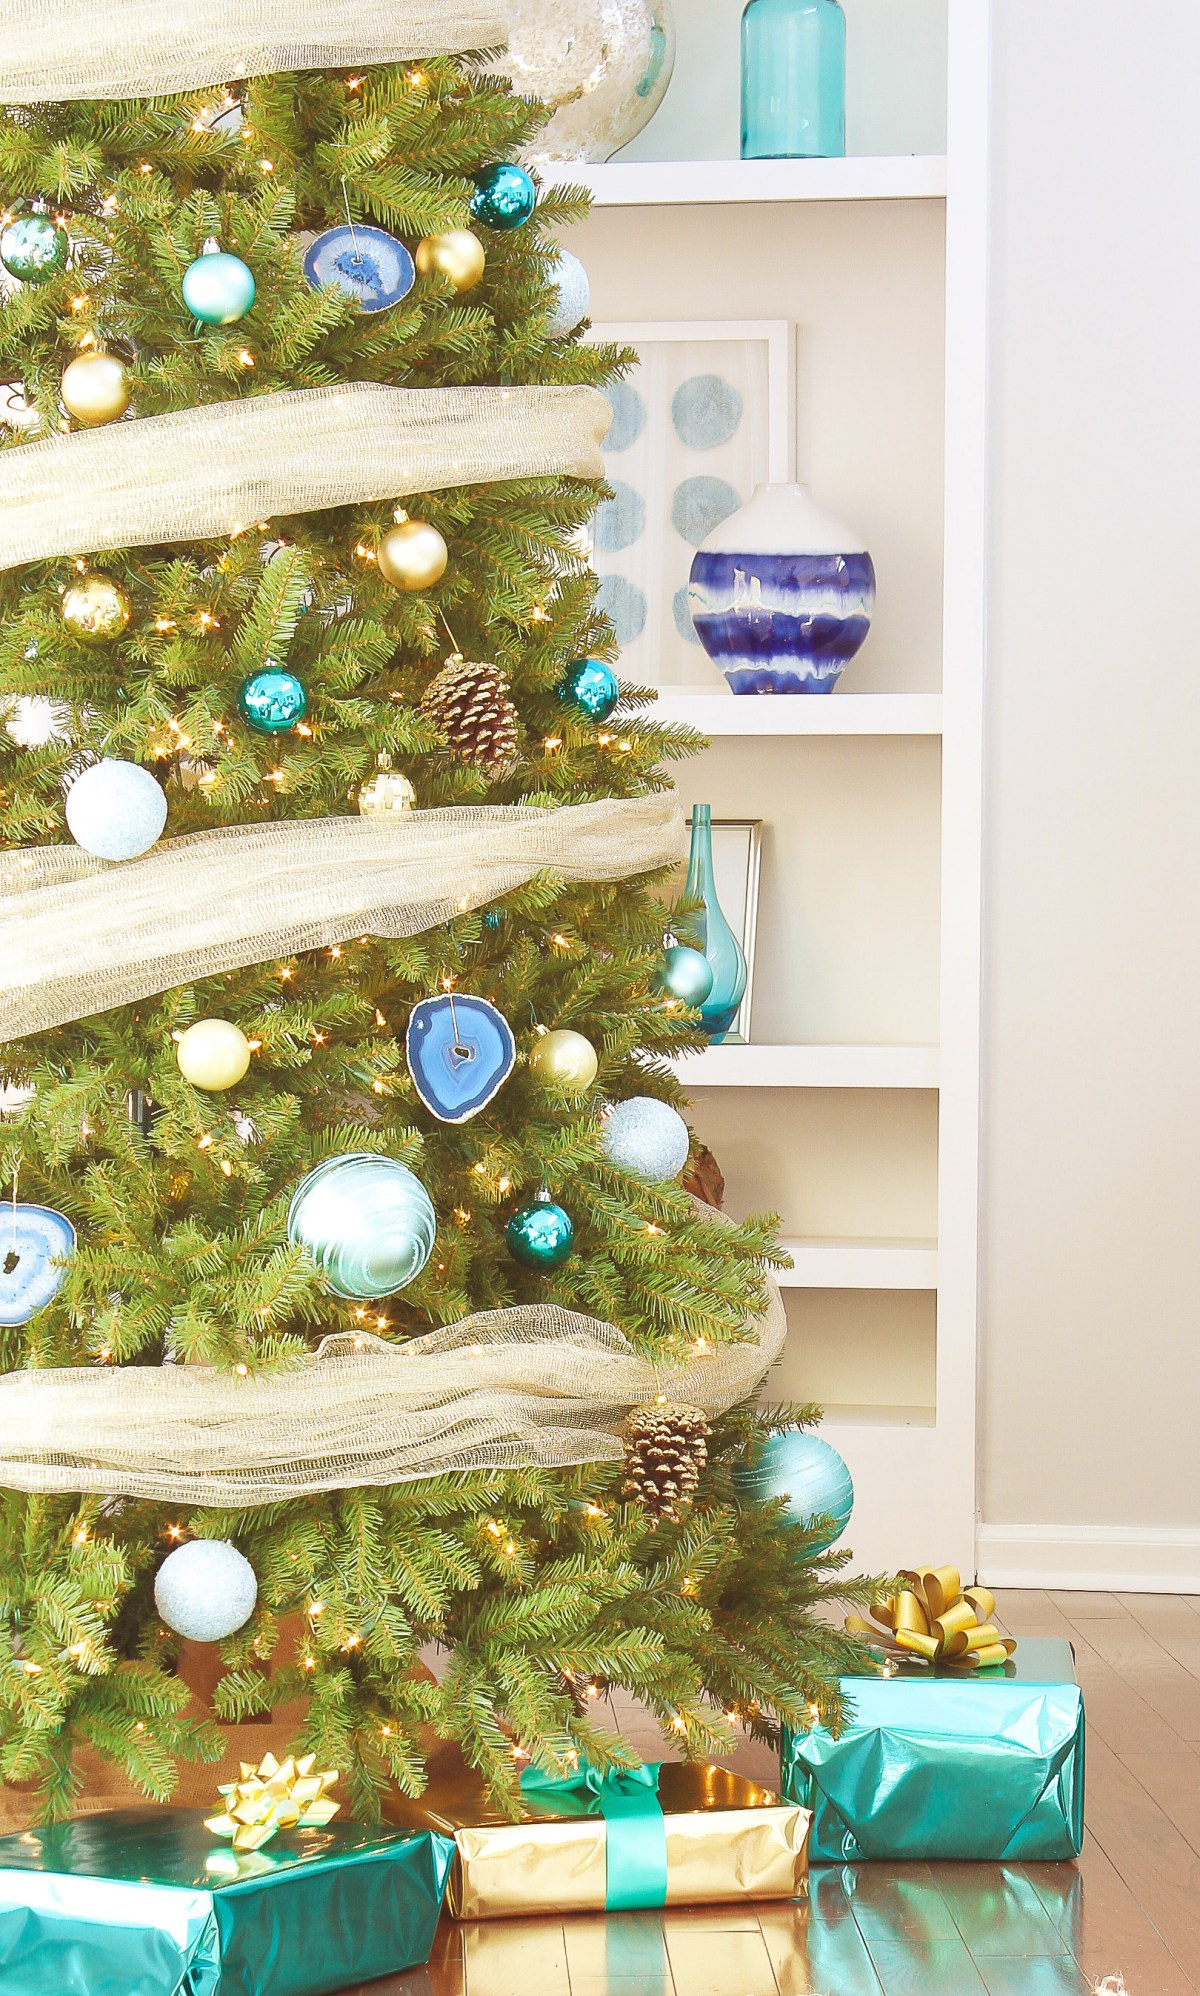 Best Pre Lit Artificial Christmas Trees.The Best Artificial Christmas Trees On A Budget Prelit Trees